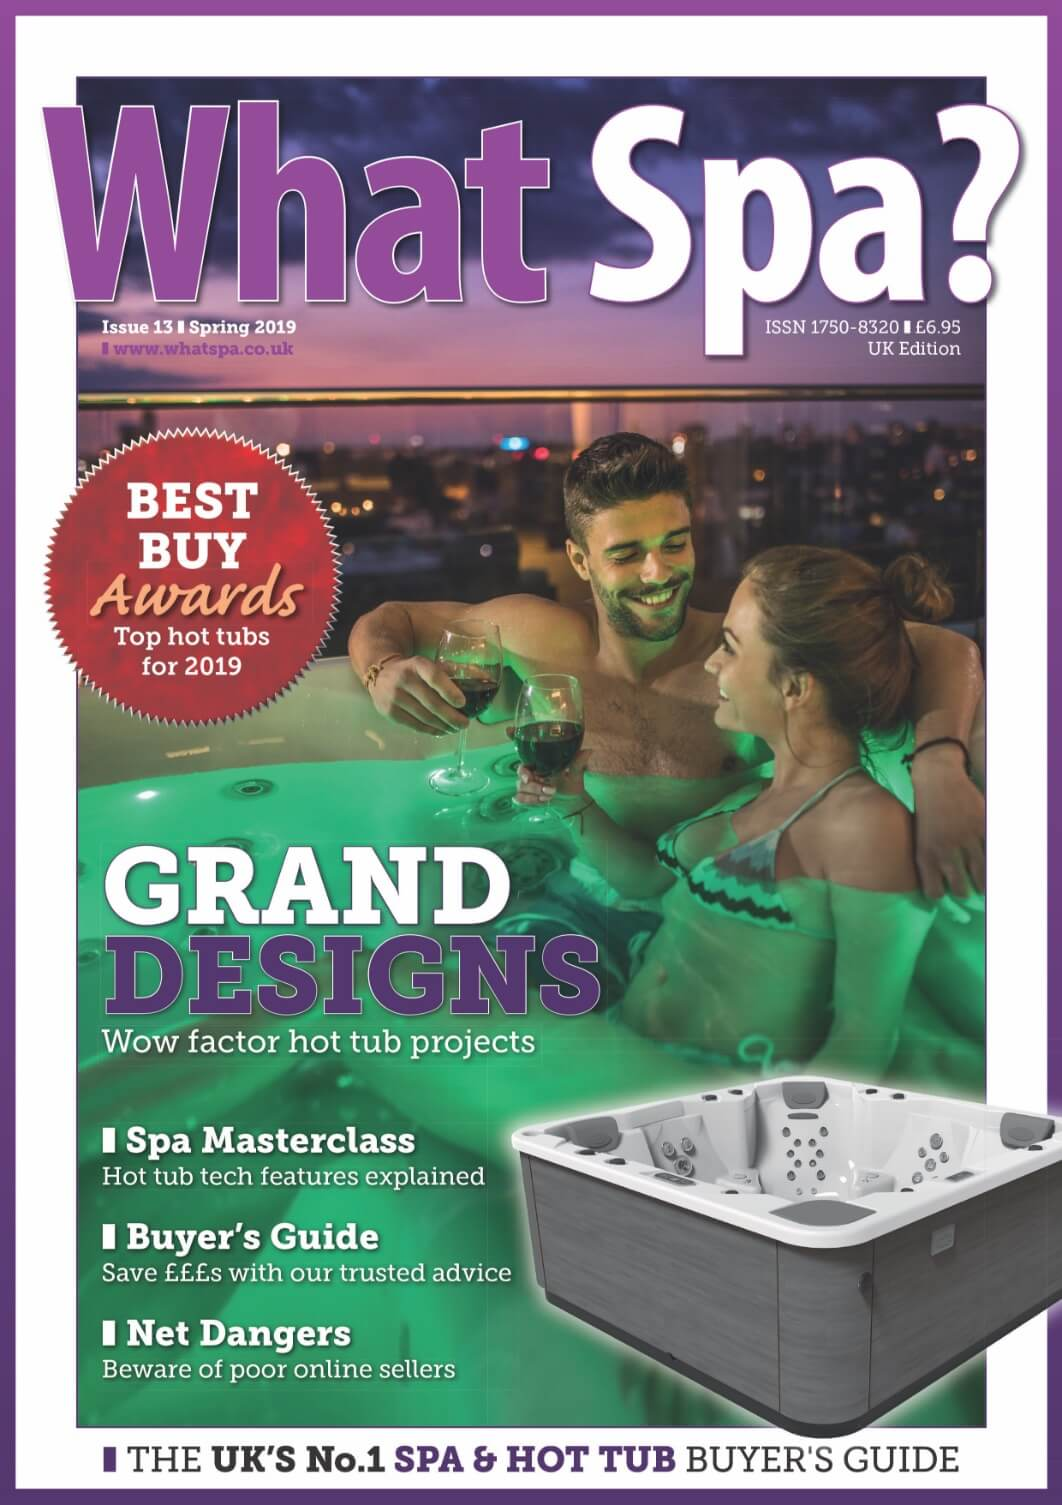 Latest WhatSpa? magazine cover